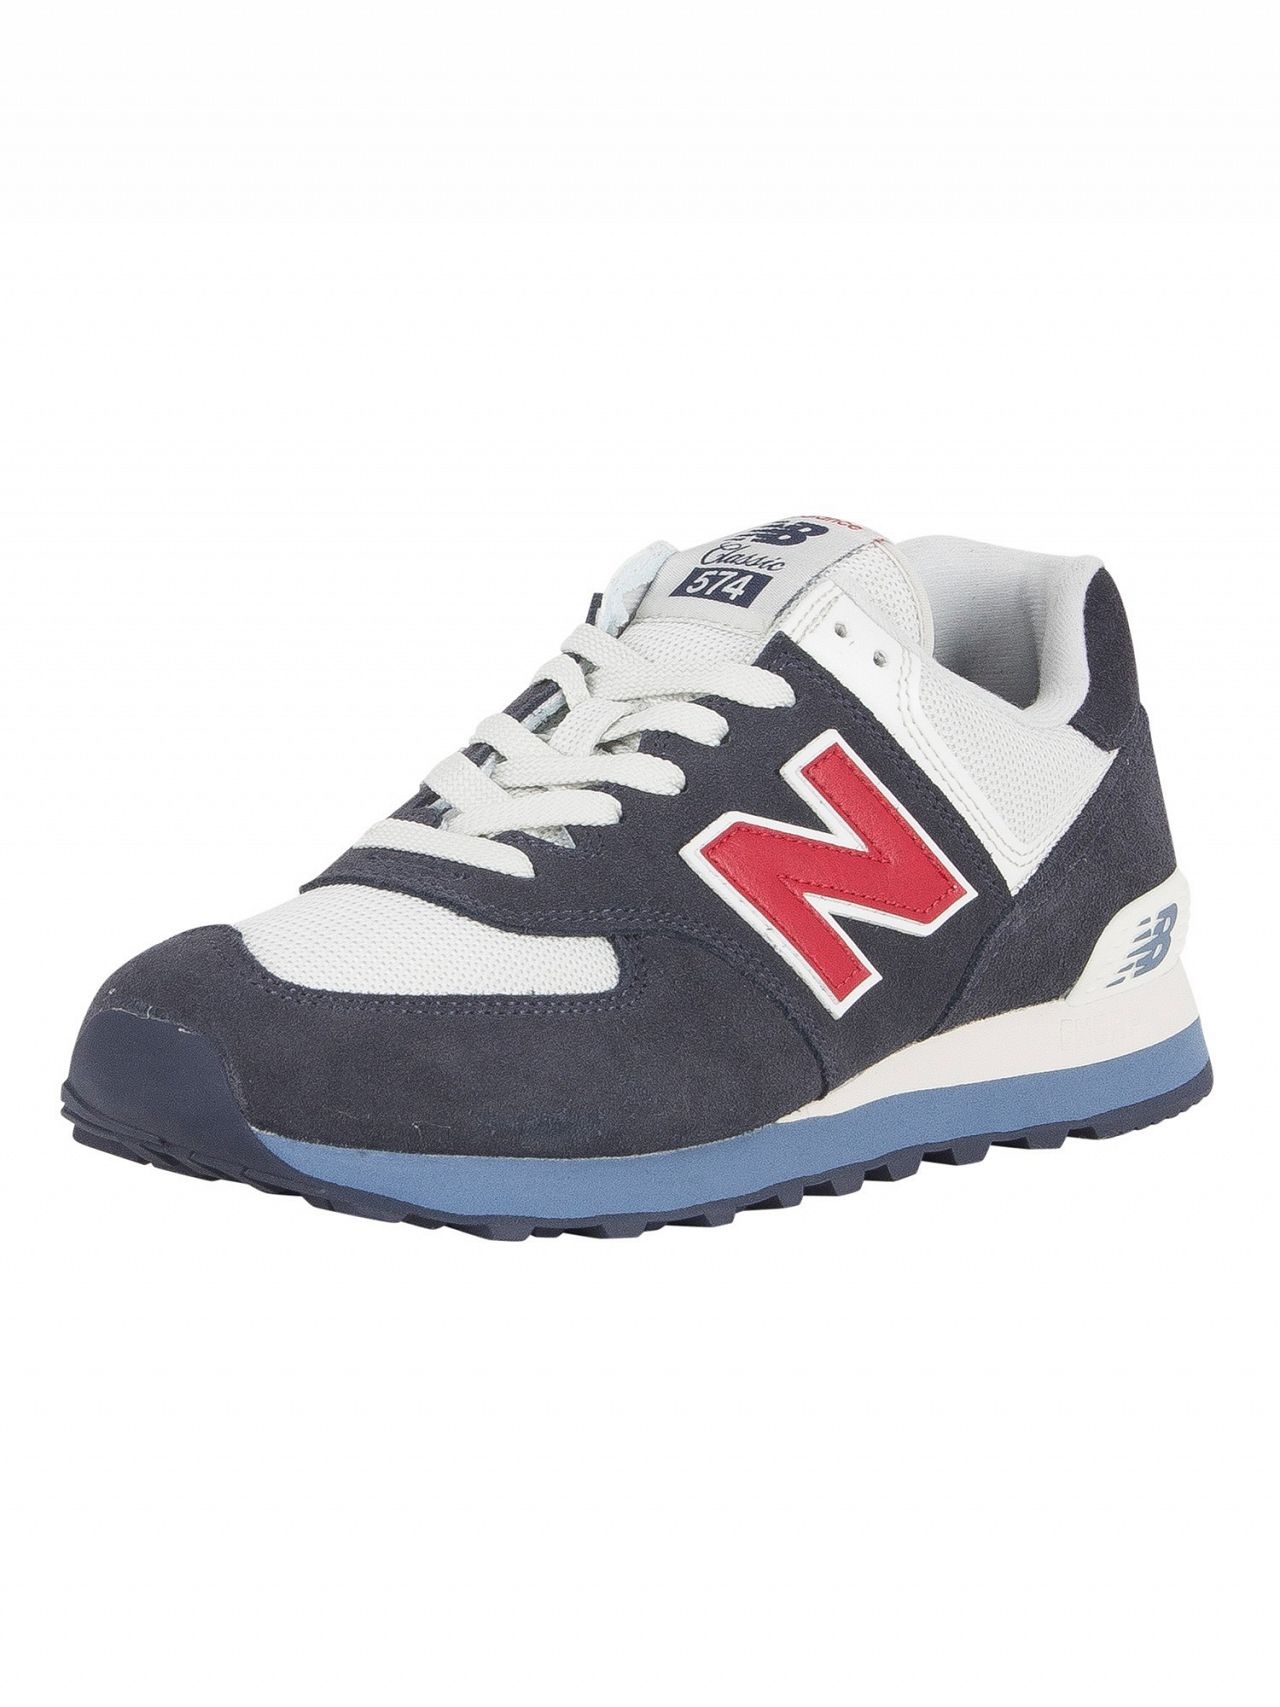 acb45a224edbc New Balance Navy/Red 574 Suede Trainers | Standout